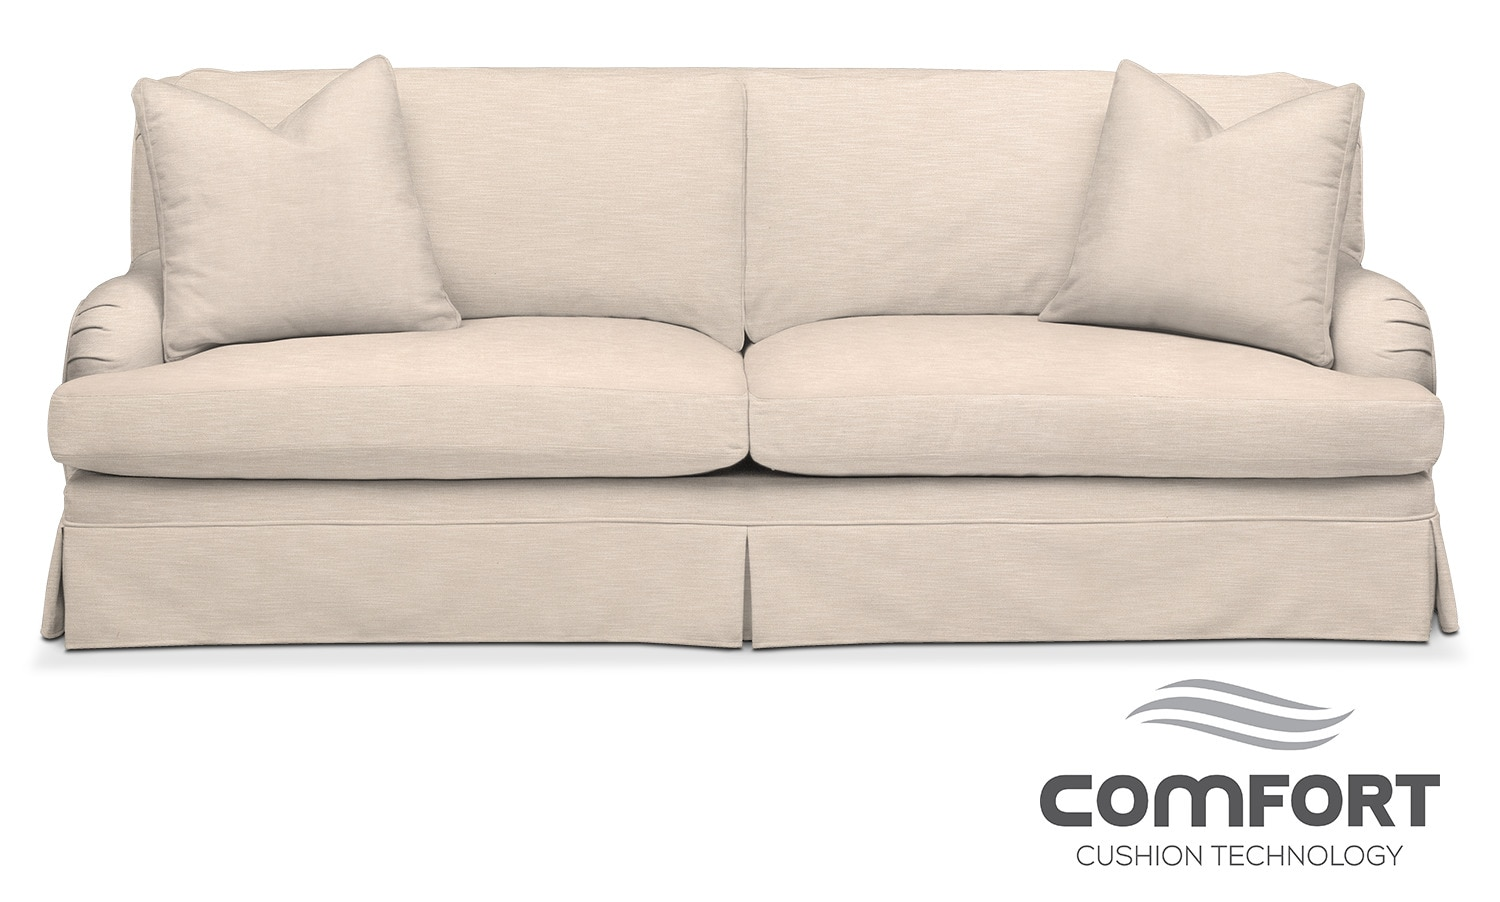 Living Room Furniture - Campbell Comfort Sofa - Buff